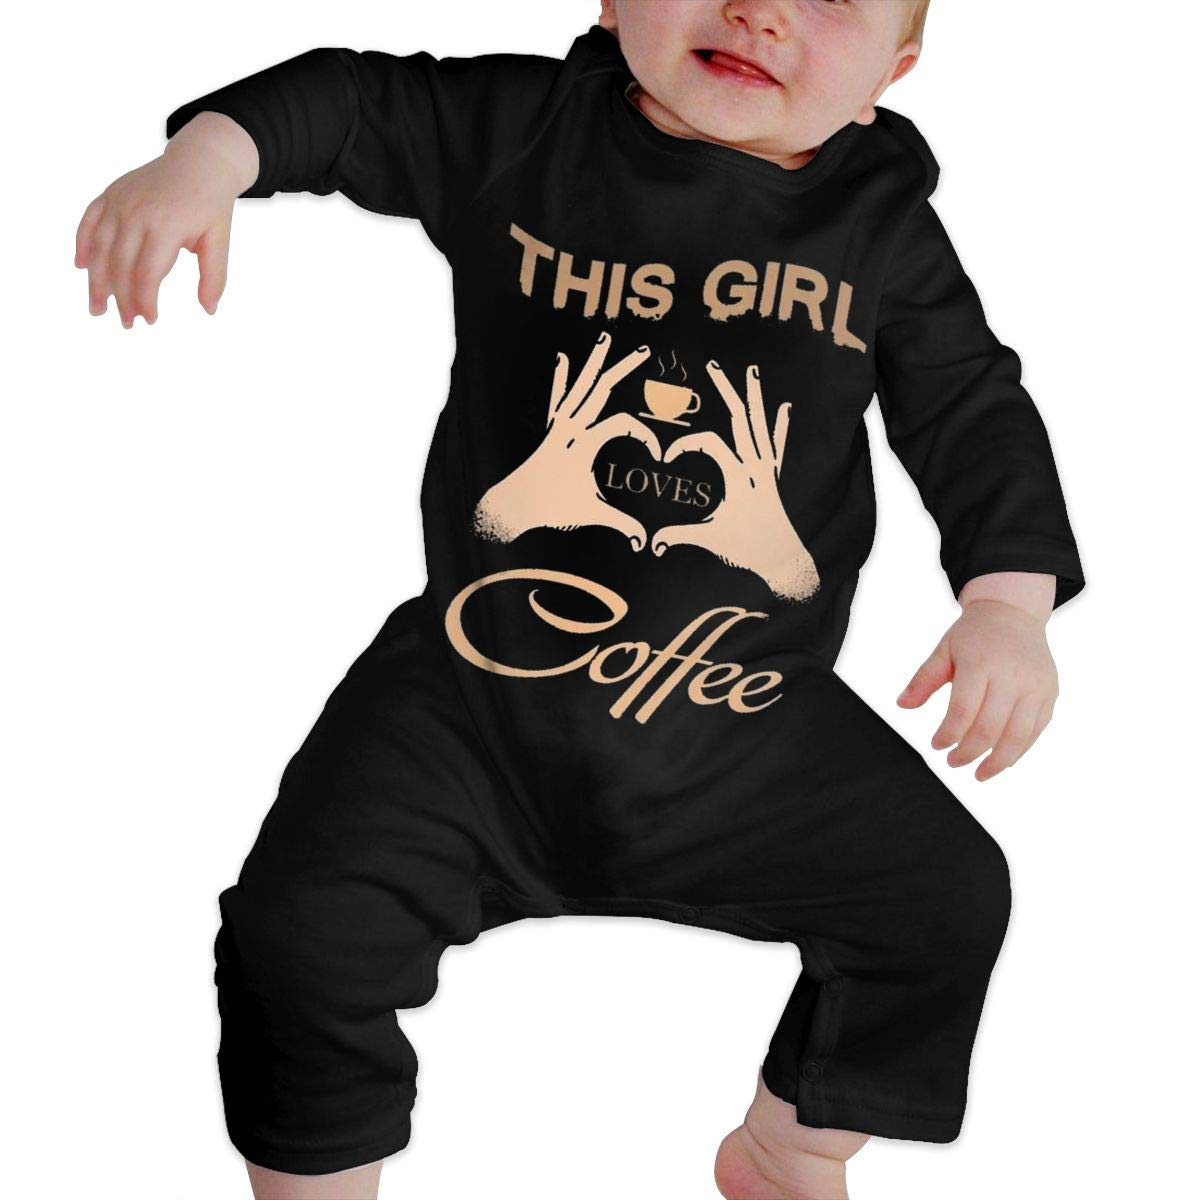 Gary Katte This Girl Loves Coffee Newborn Jumpsuit Infant Baby Girls Long-Sleeve Bodysuit Playsuit Outfits ClothesBlack